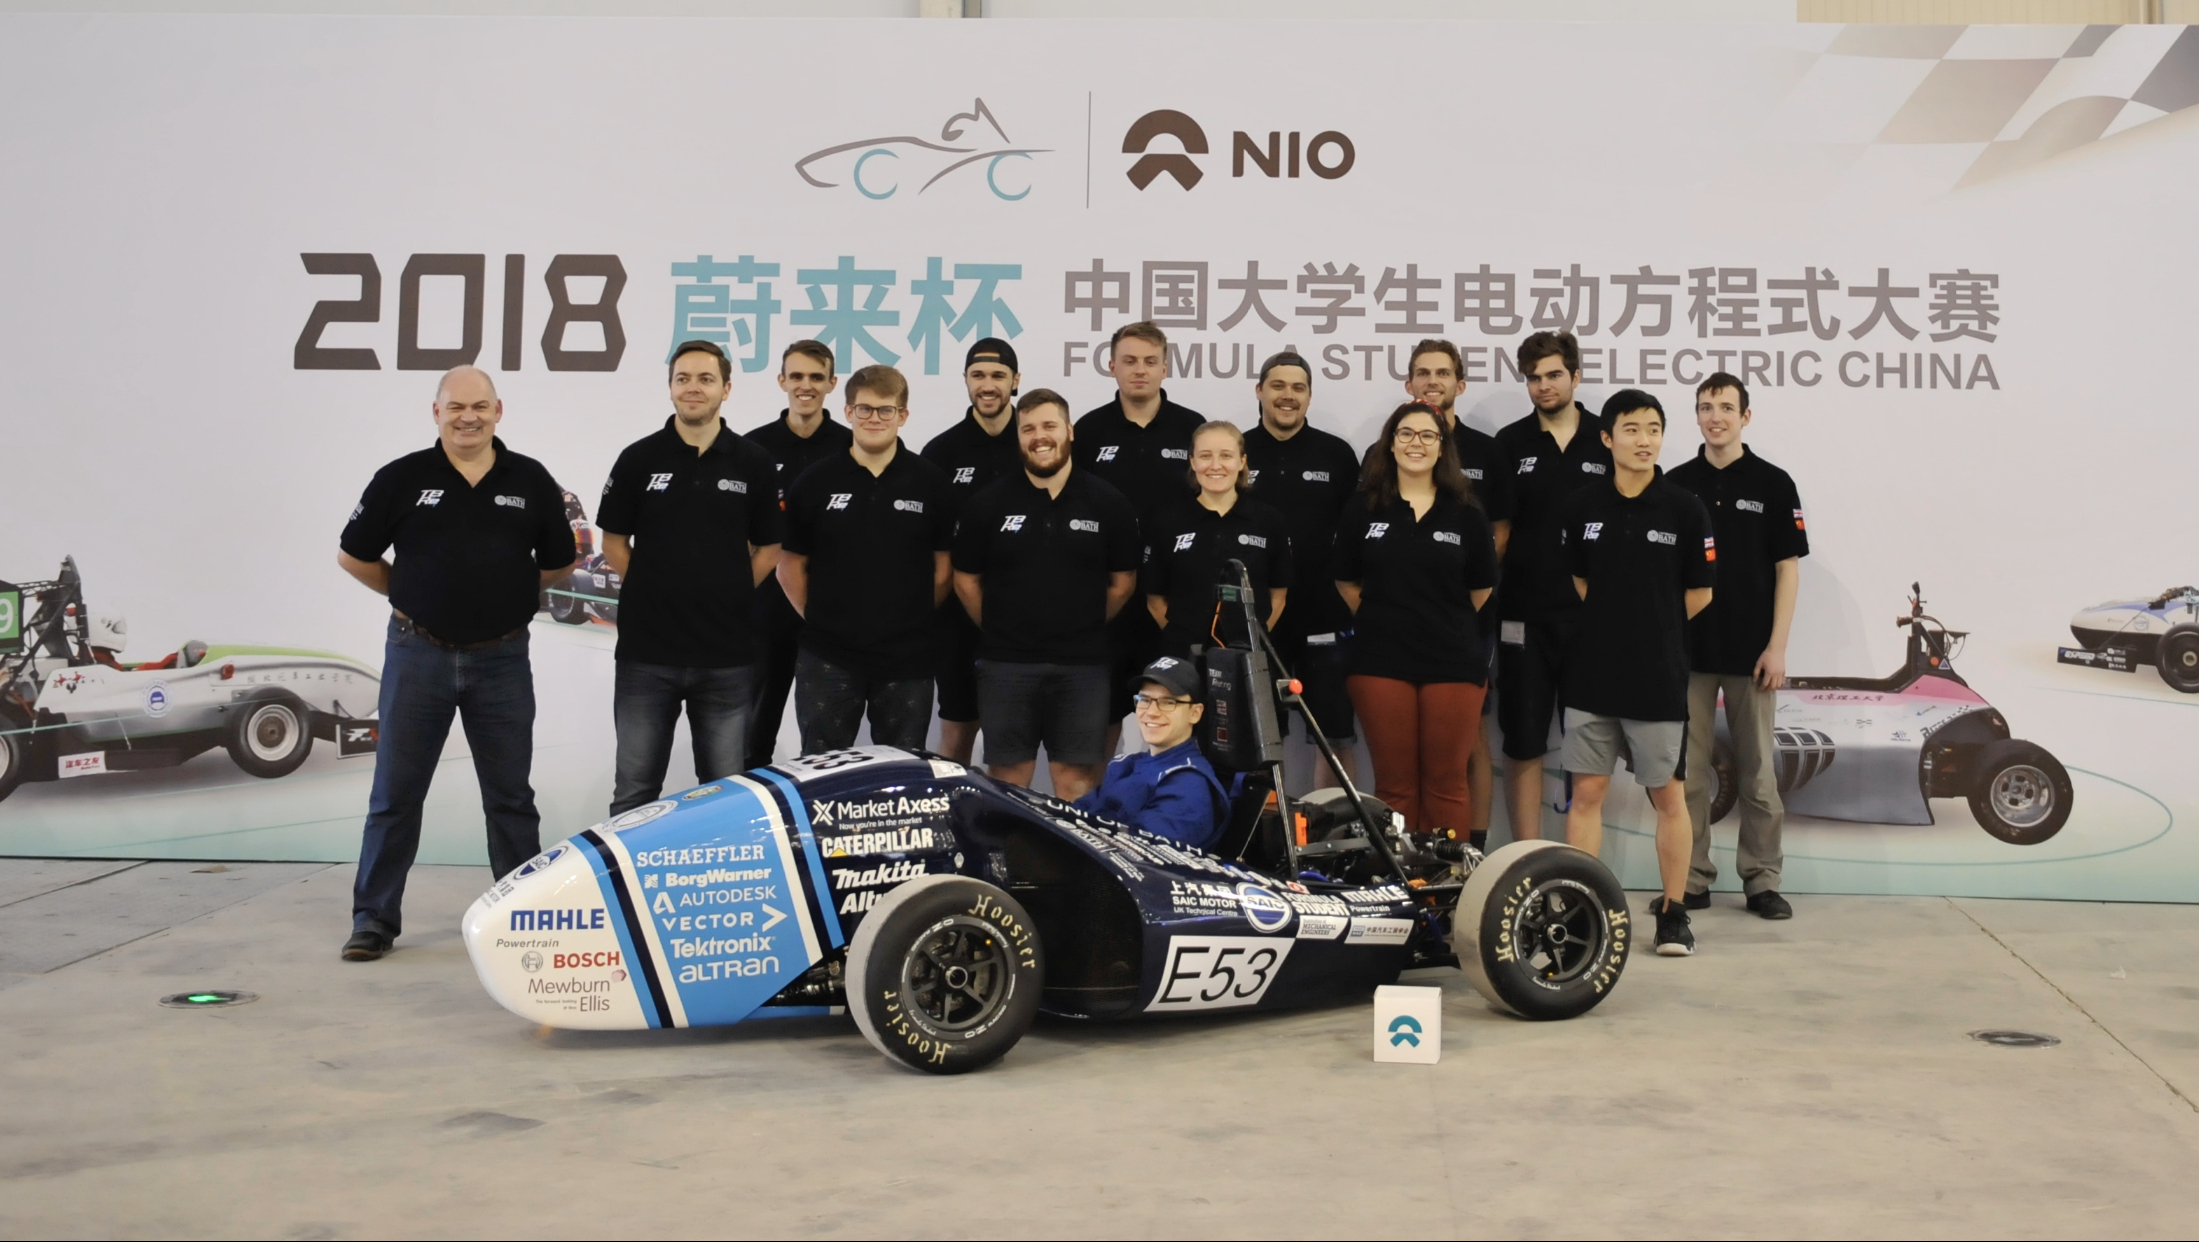 A successful Crowdfunding at Bath campaign helped Team Bath Racing Electric compete in China